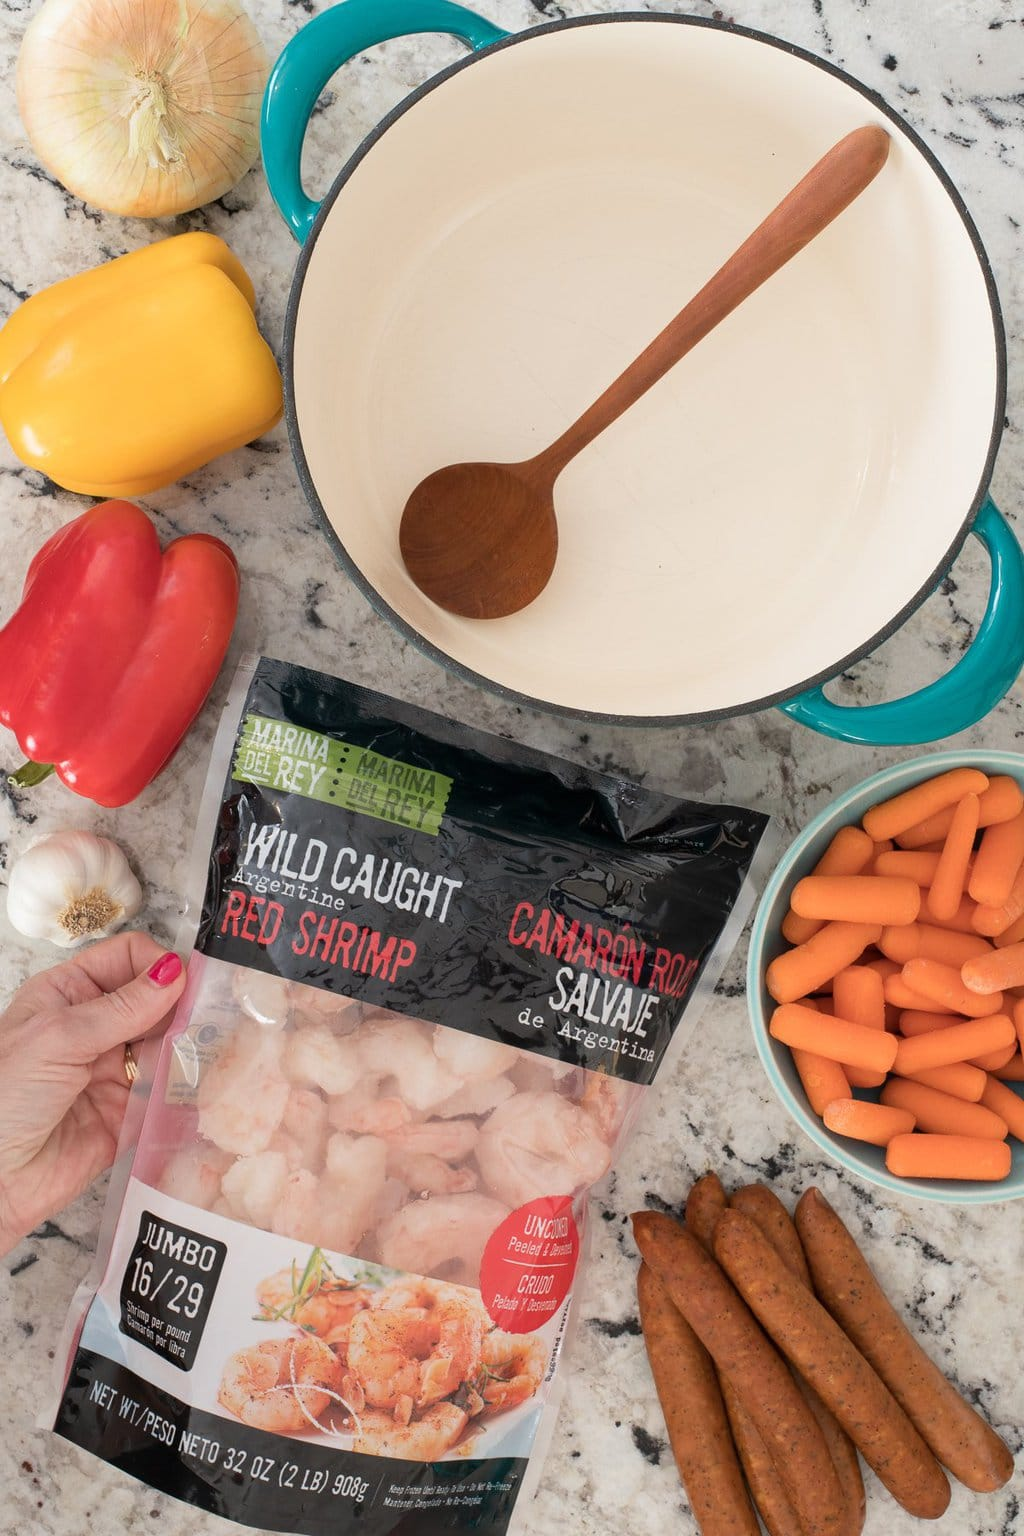 Overhead photo of the ingredients for making Shrimp and Andouille Gumbo using Marina Del Ray brand shrimp.